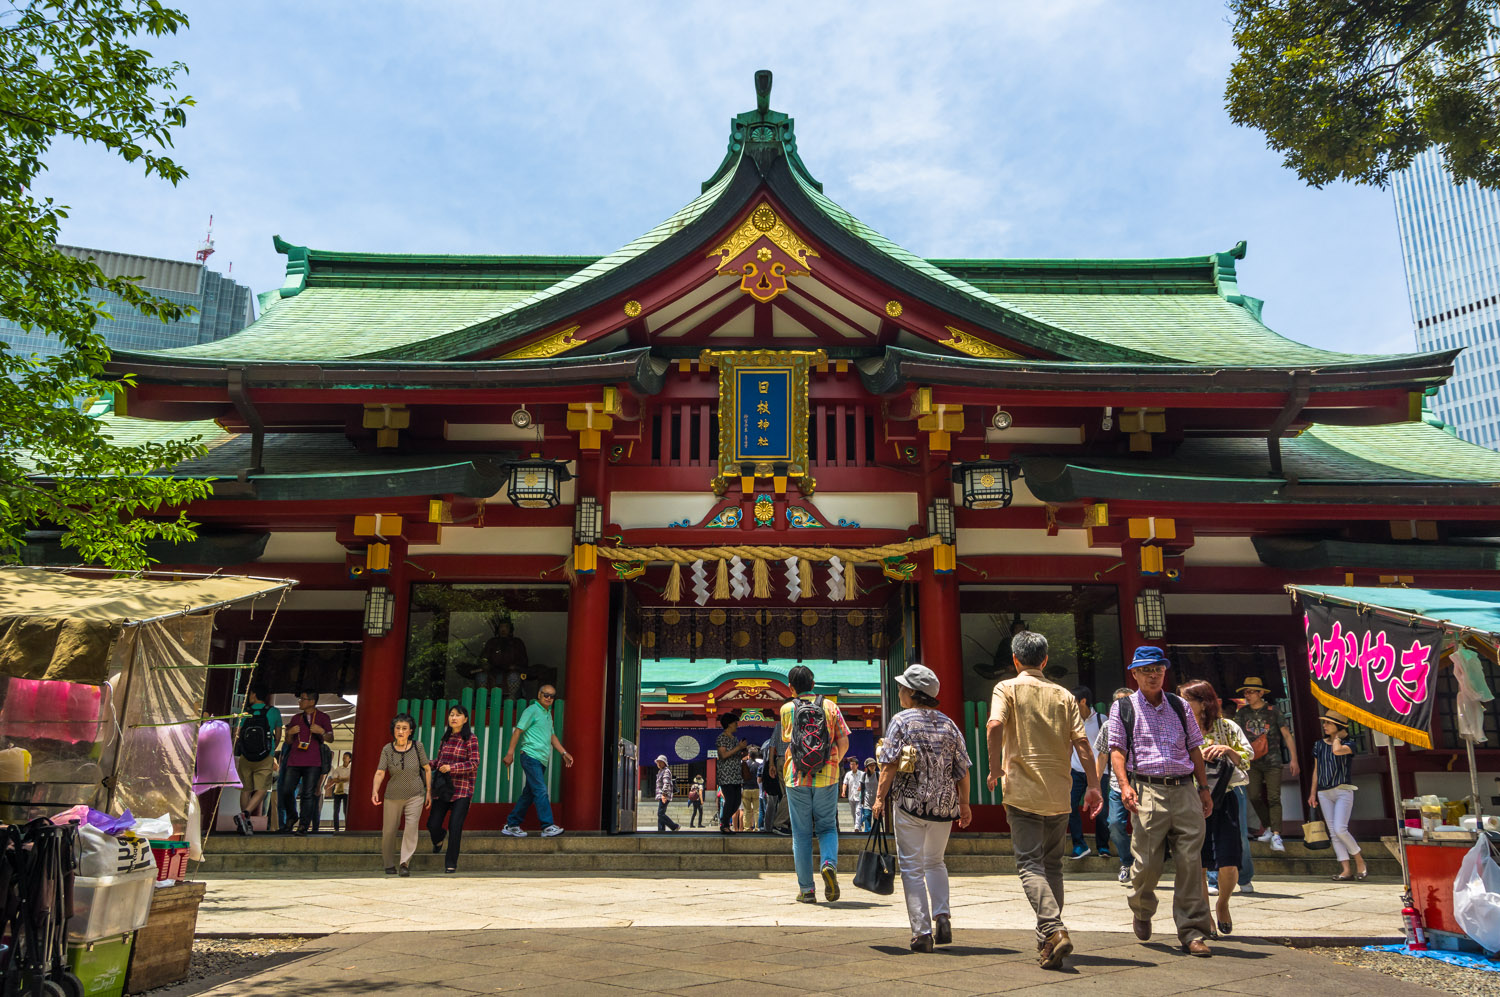 One of the side entrances to Hie shrine - I had to wait ages here to get this shot as so many people want this one too!